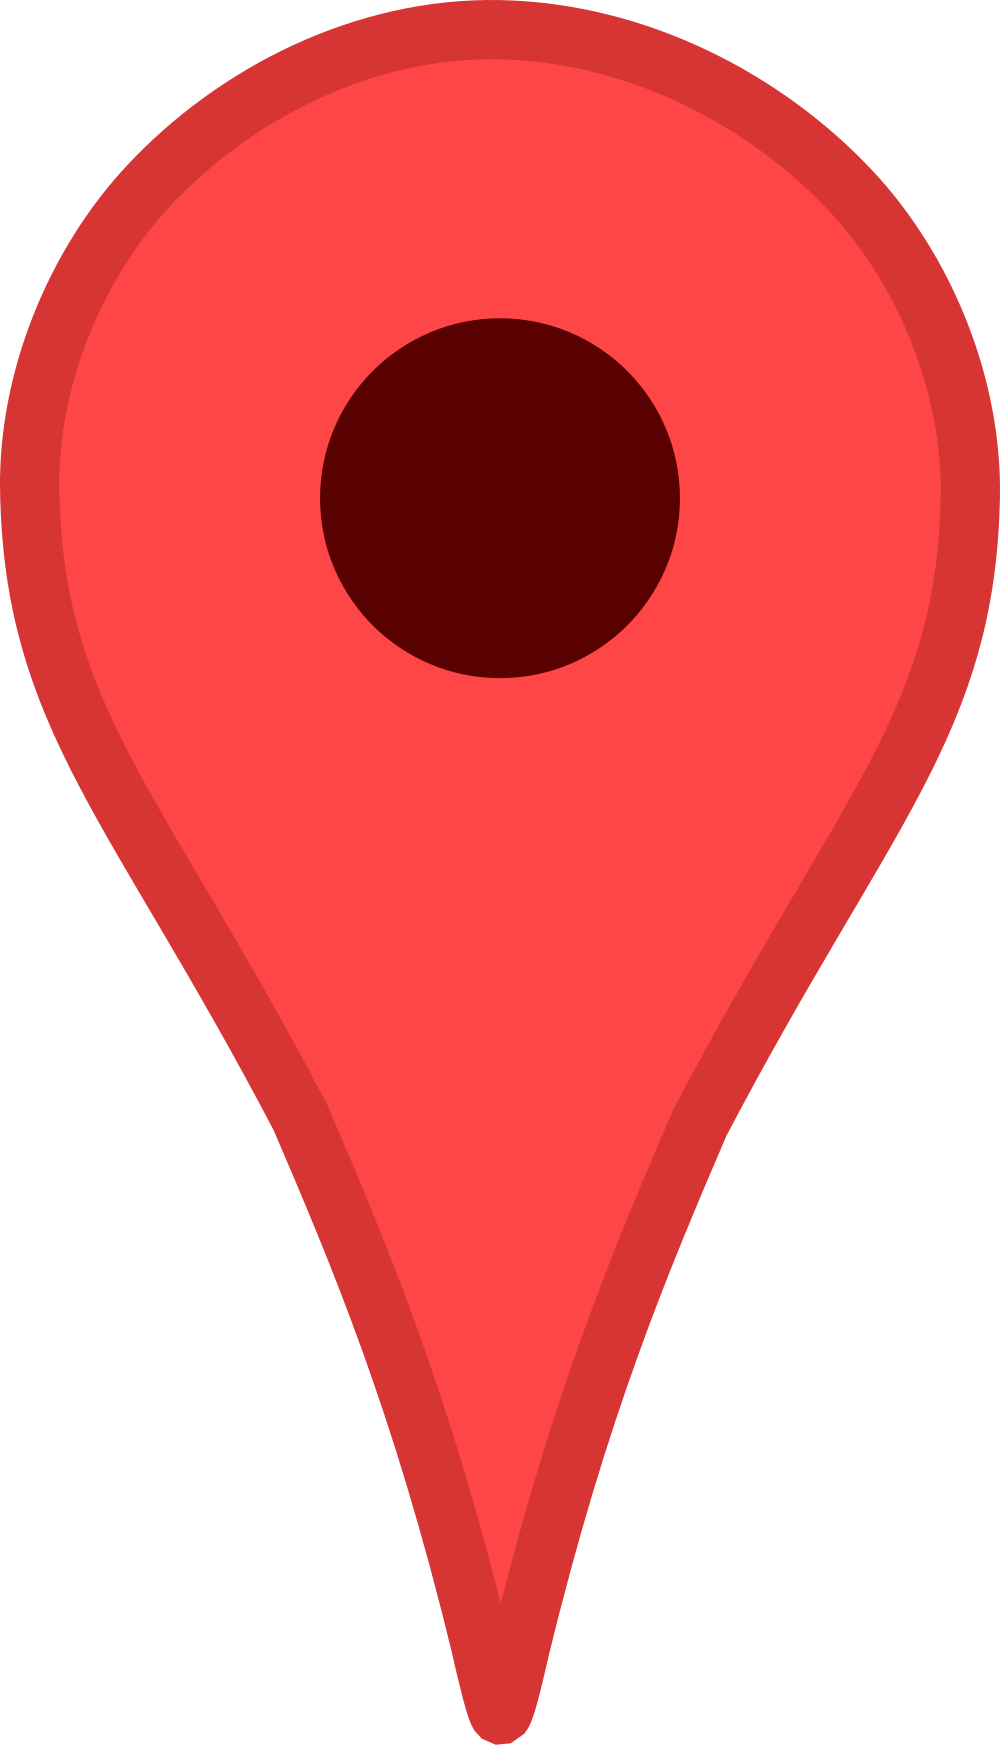 clip freeuse Maps clipart pin point. Physic minimalistics co.